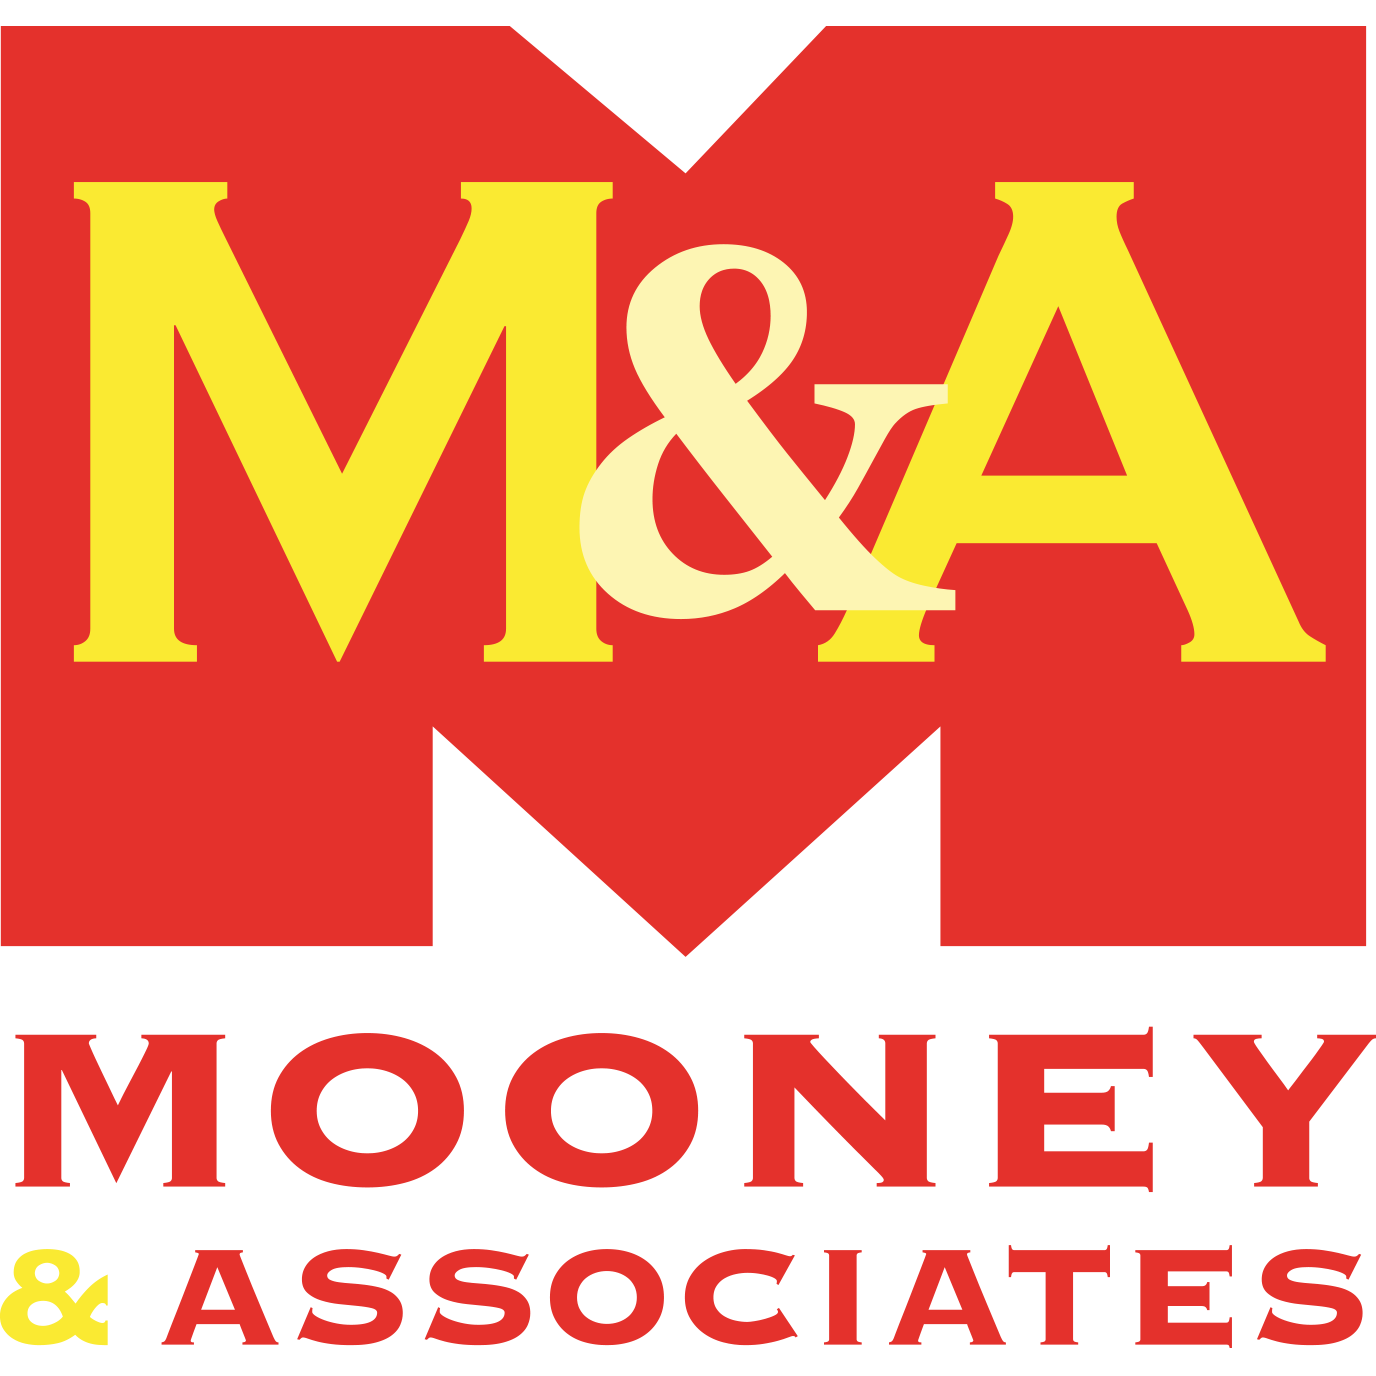 Mooney & Associates - Gettysburg, PA - Attorneys